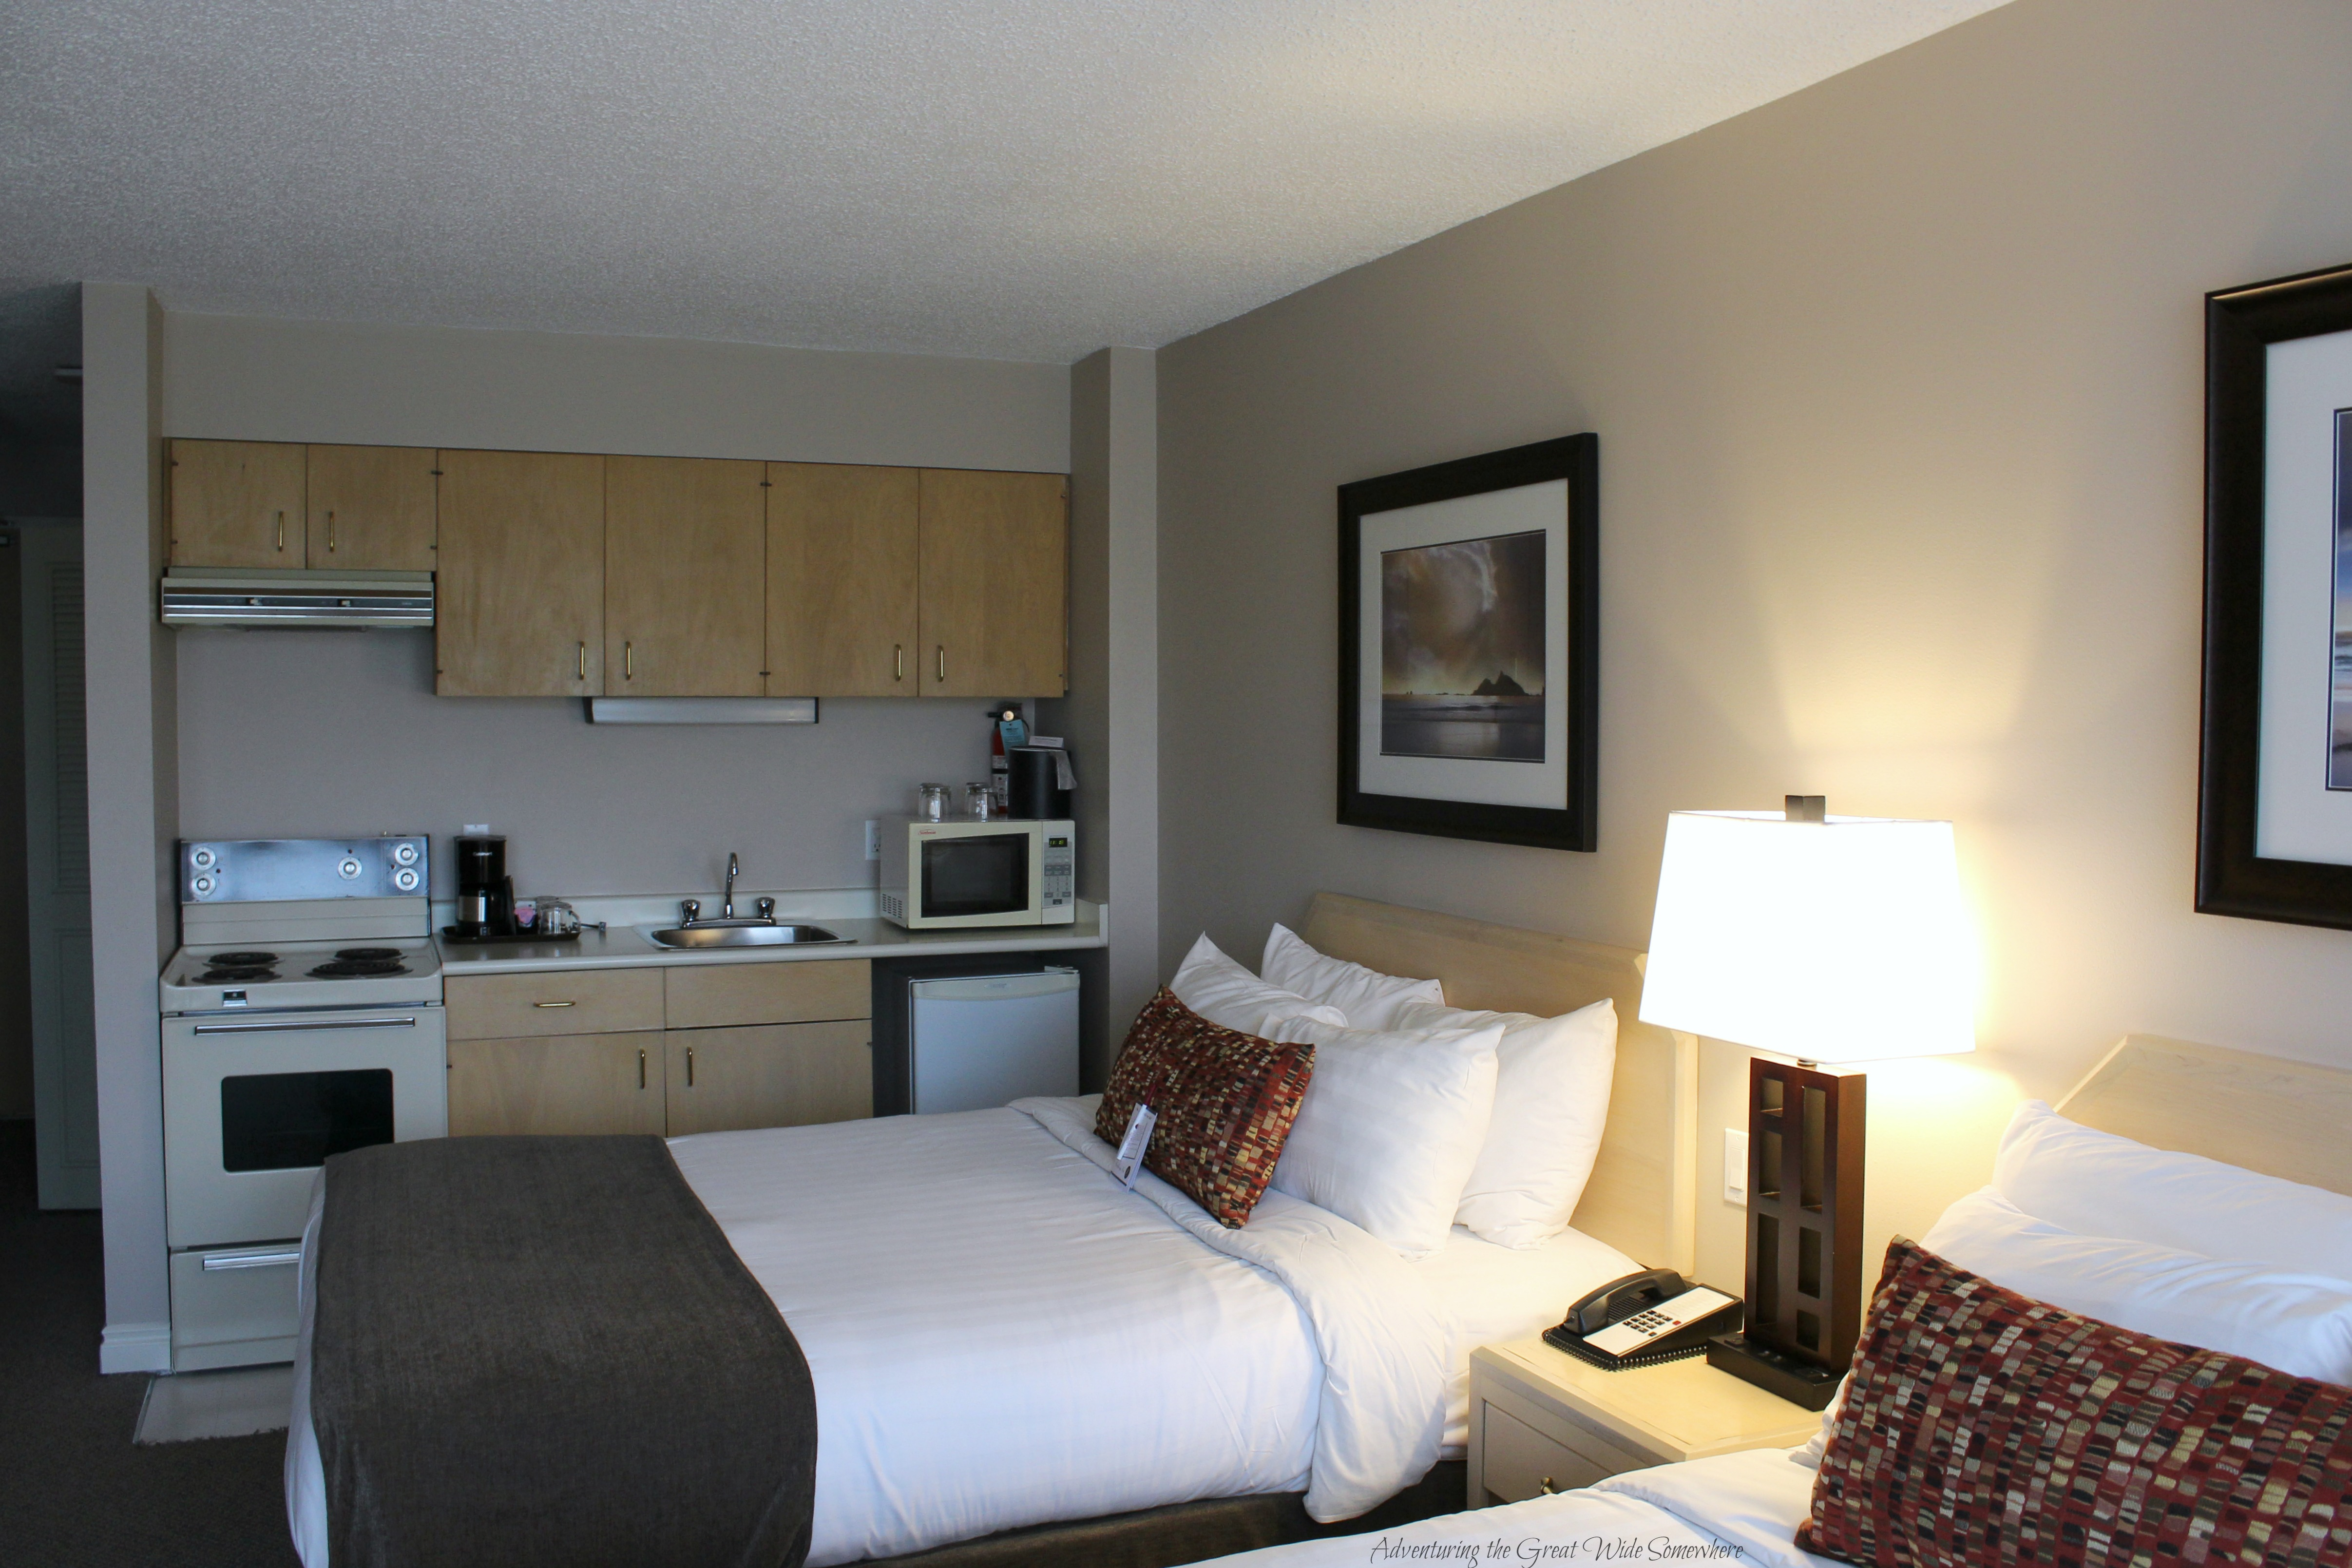 The Embassy Inn: Casual Comfort in the Heart of Downtown Victoria, B.C.